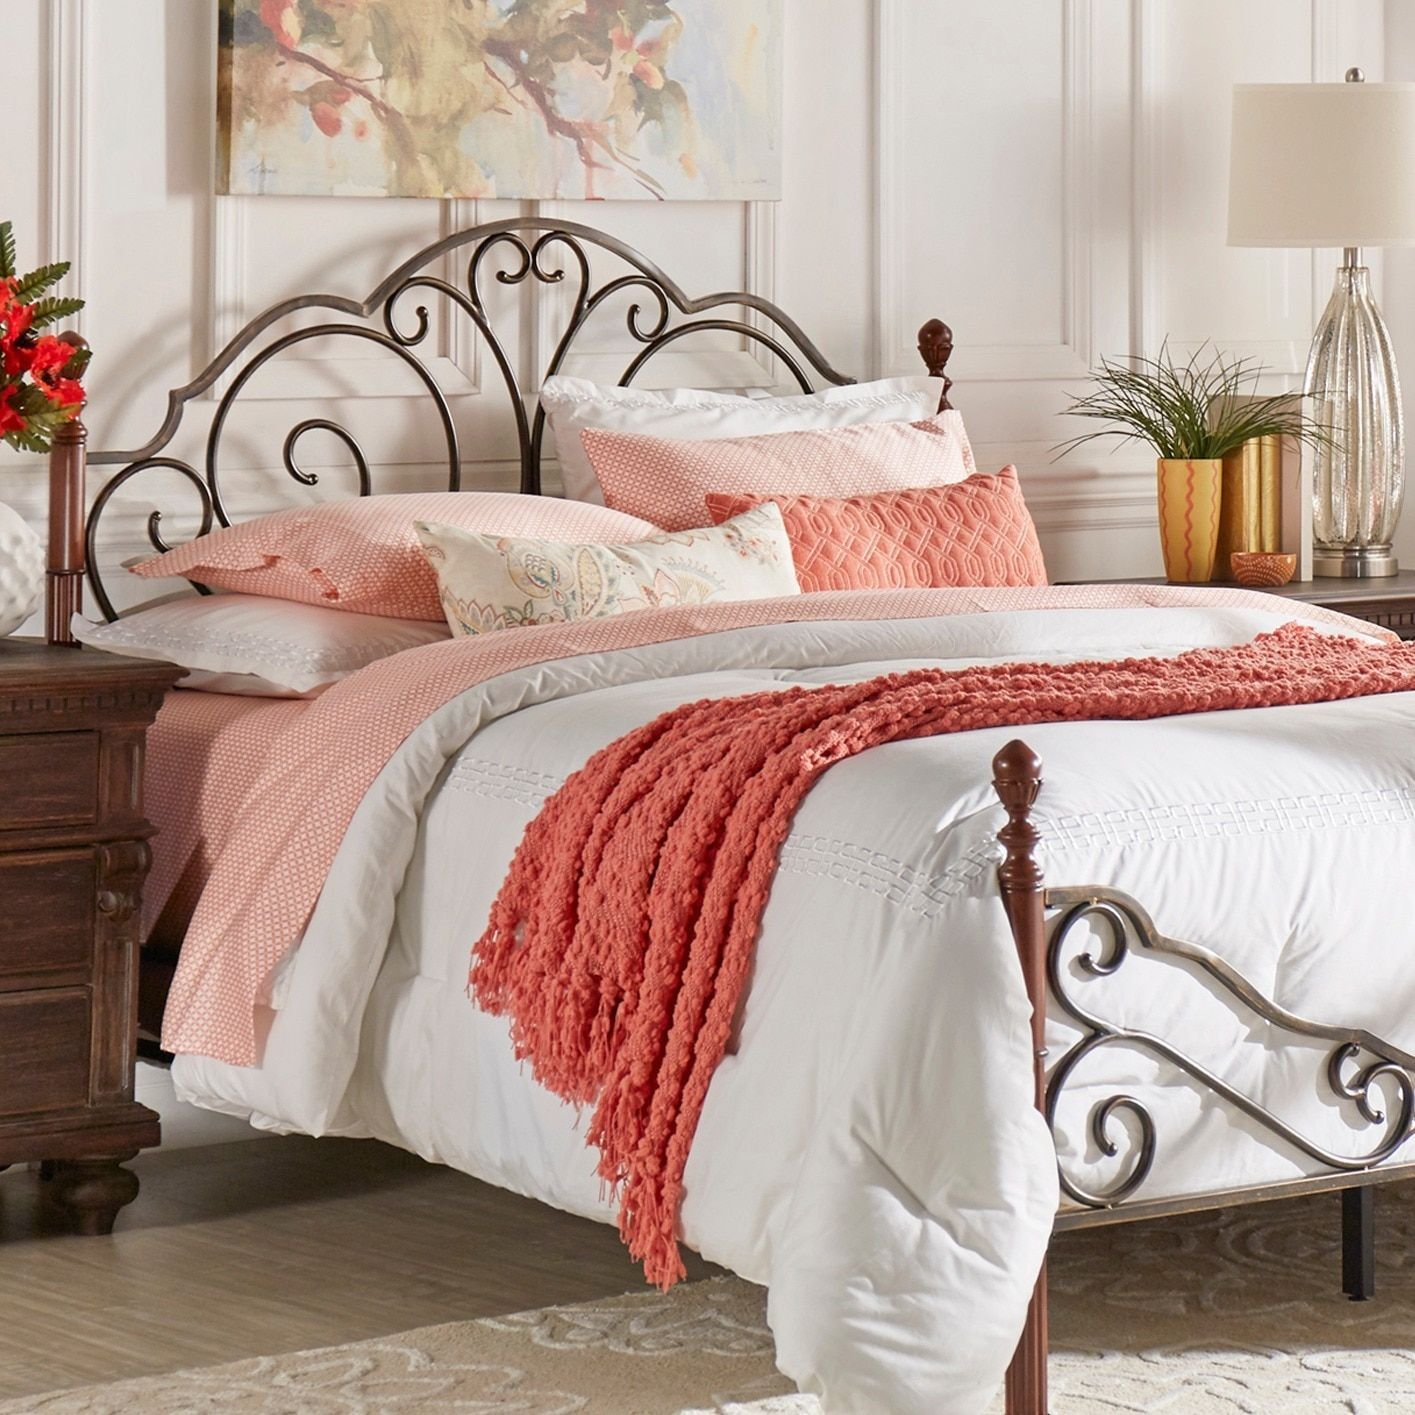 Tribecca Home LeAnn Graceful Scrolled Iron Headboard Queen Size ...